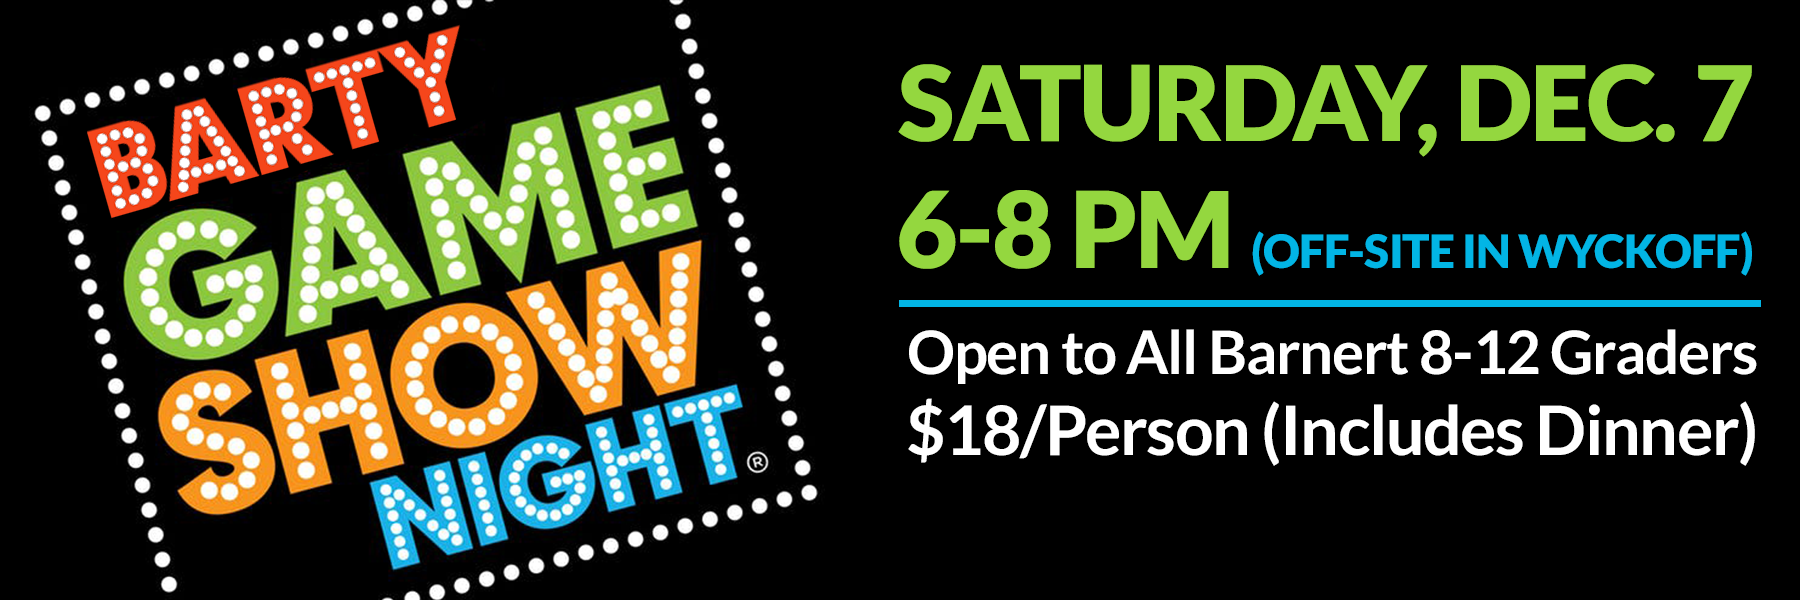 """<a href=""""https://www.barnerttemple.org/event/barty-game-show.html""""                                     target="""""""">                                                                 <span class=""""slider_title"""">                                     Don't Miss the Night of Fun, Games & Food!                                </span>                                                                 </a>                                                                                                                                                                                       <span class=""""slider_description"""">BarTY (Barnert Temple Youth) is open to all Temple members in grades 8 - 12.  Contact Jessie Losch, Barnert Temple Youth Advisor, at barty@barnerttemple.org with questions or to RSVP.</span>"""